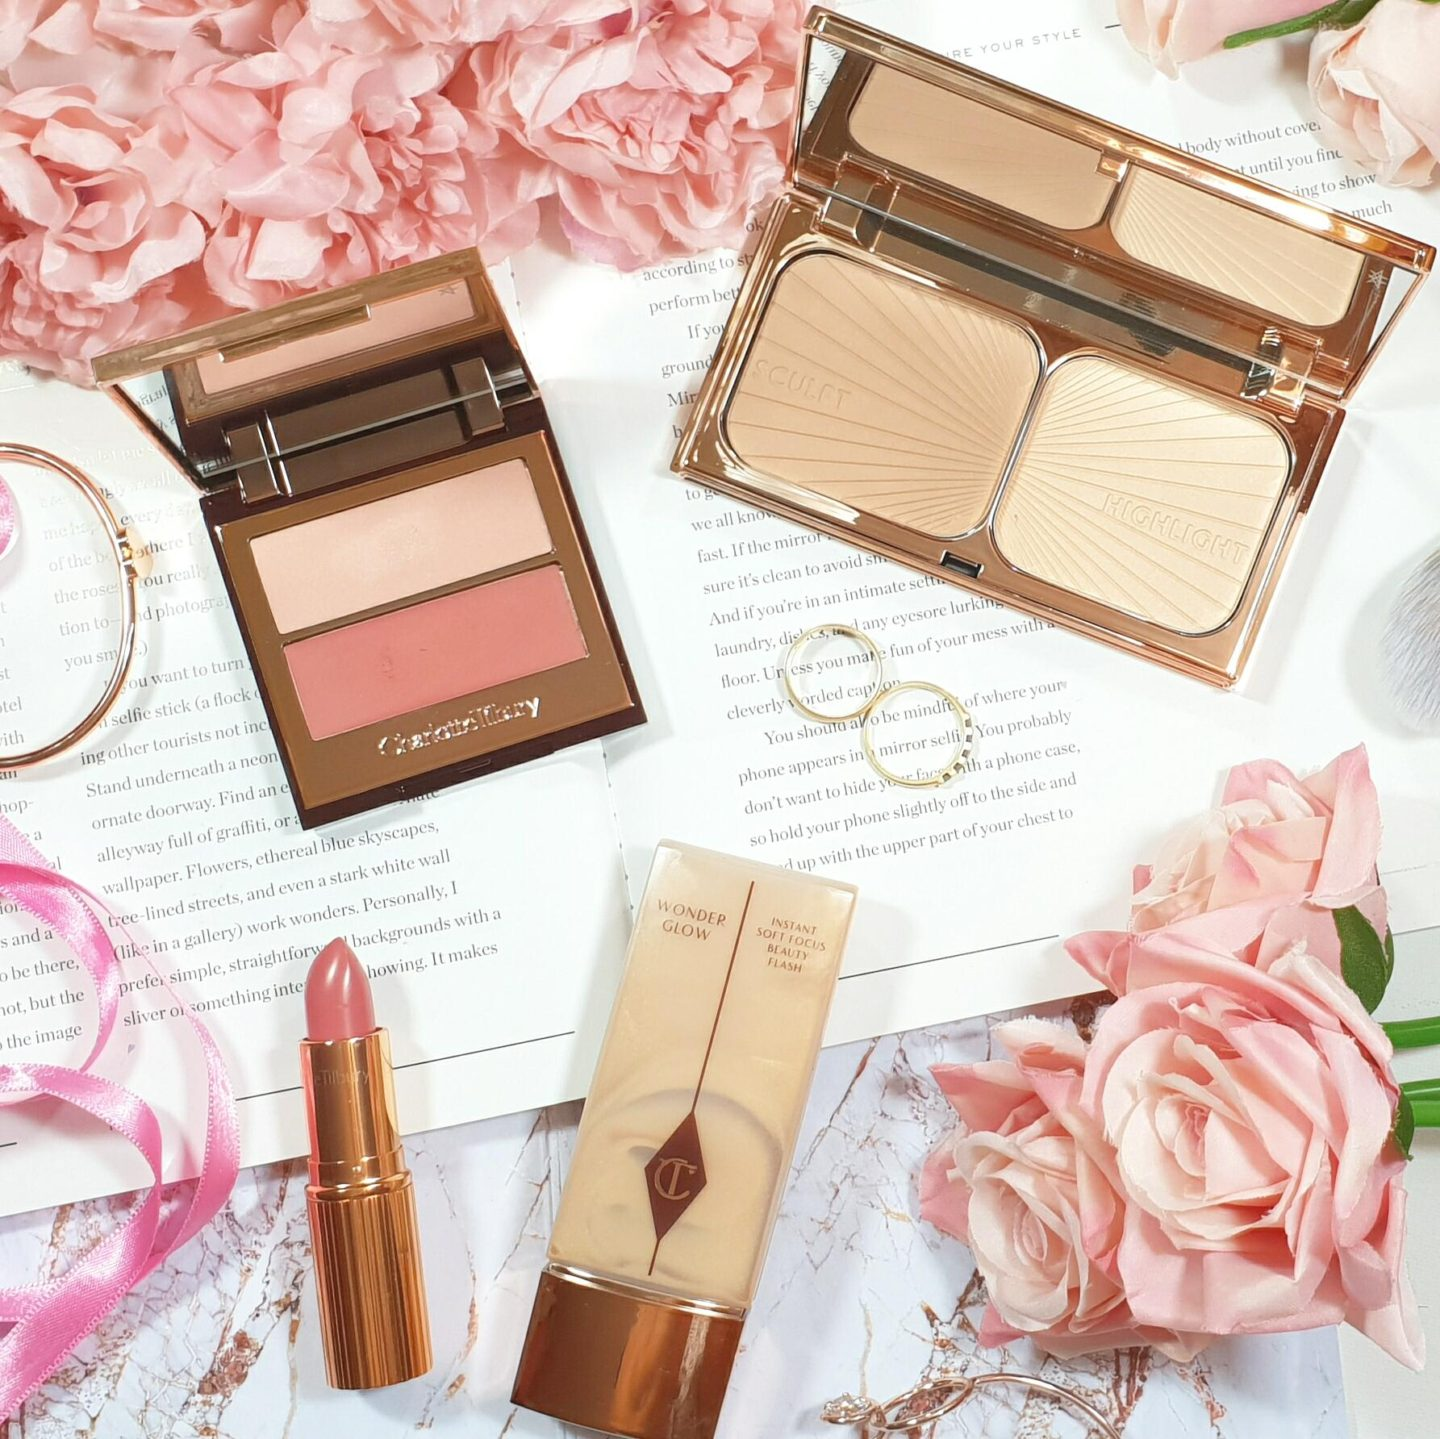 Keeping A Summer Glow With Charlotte Tilbury